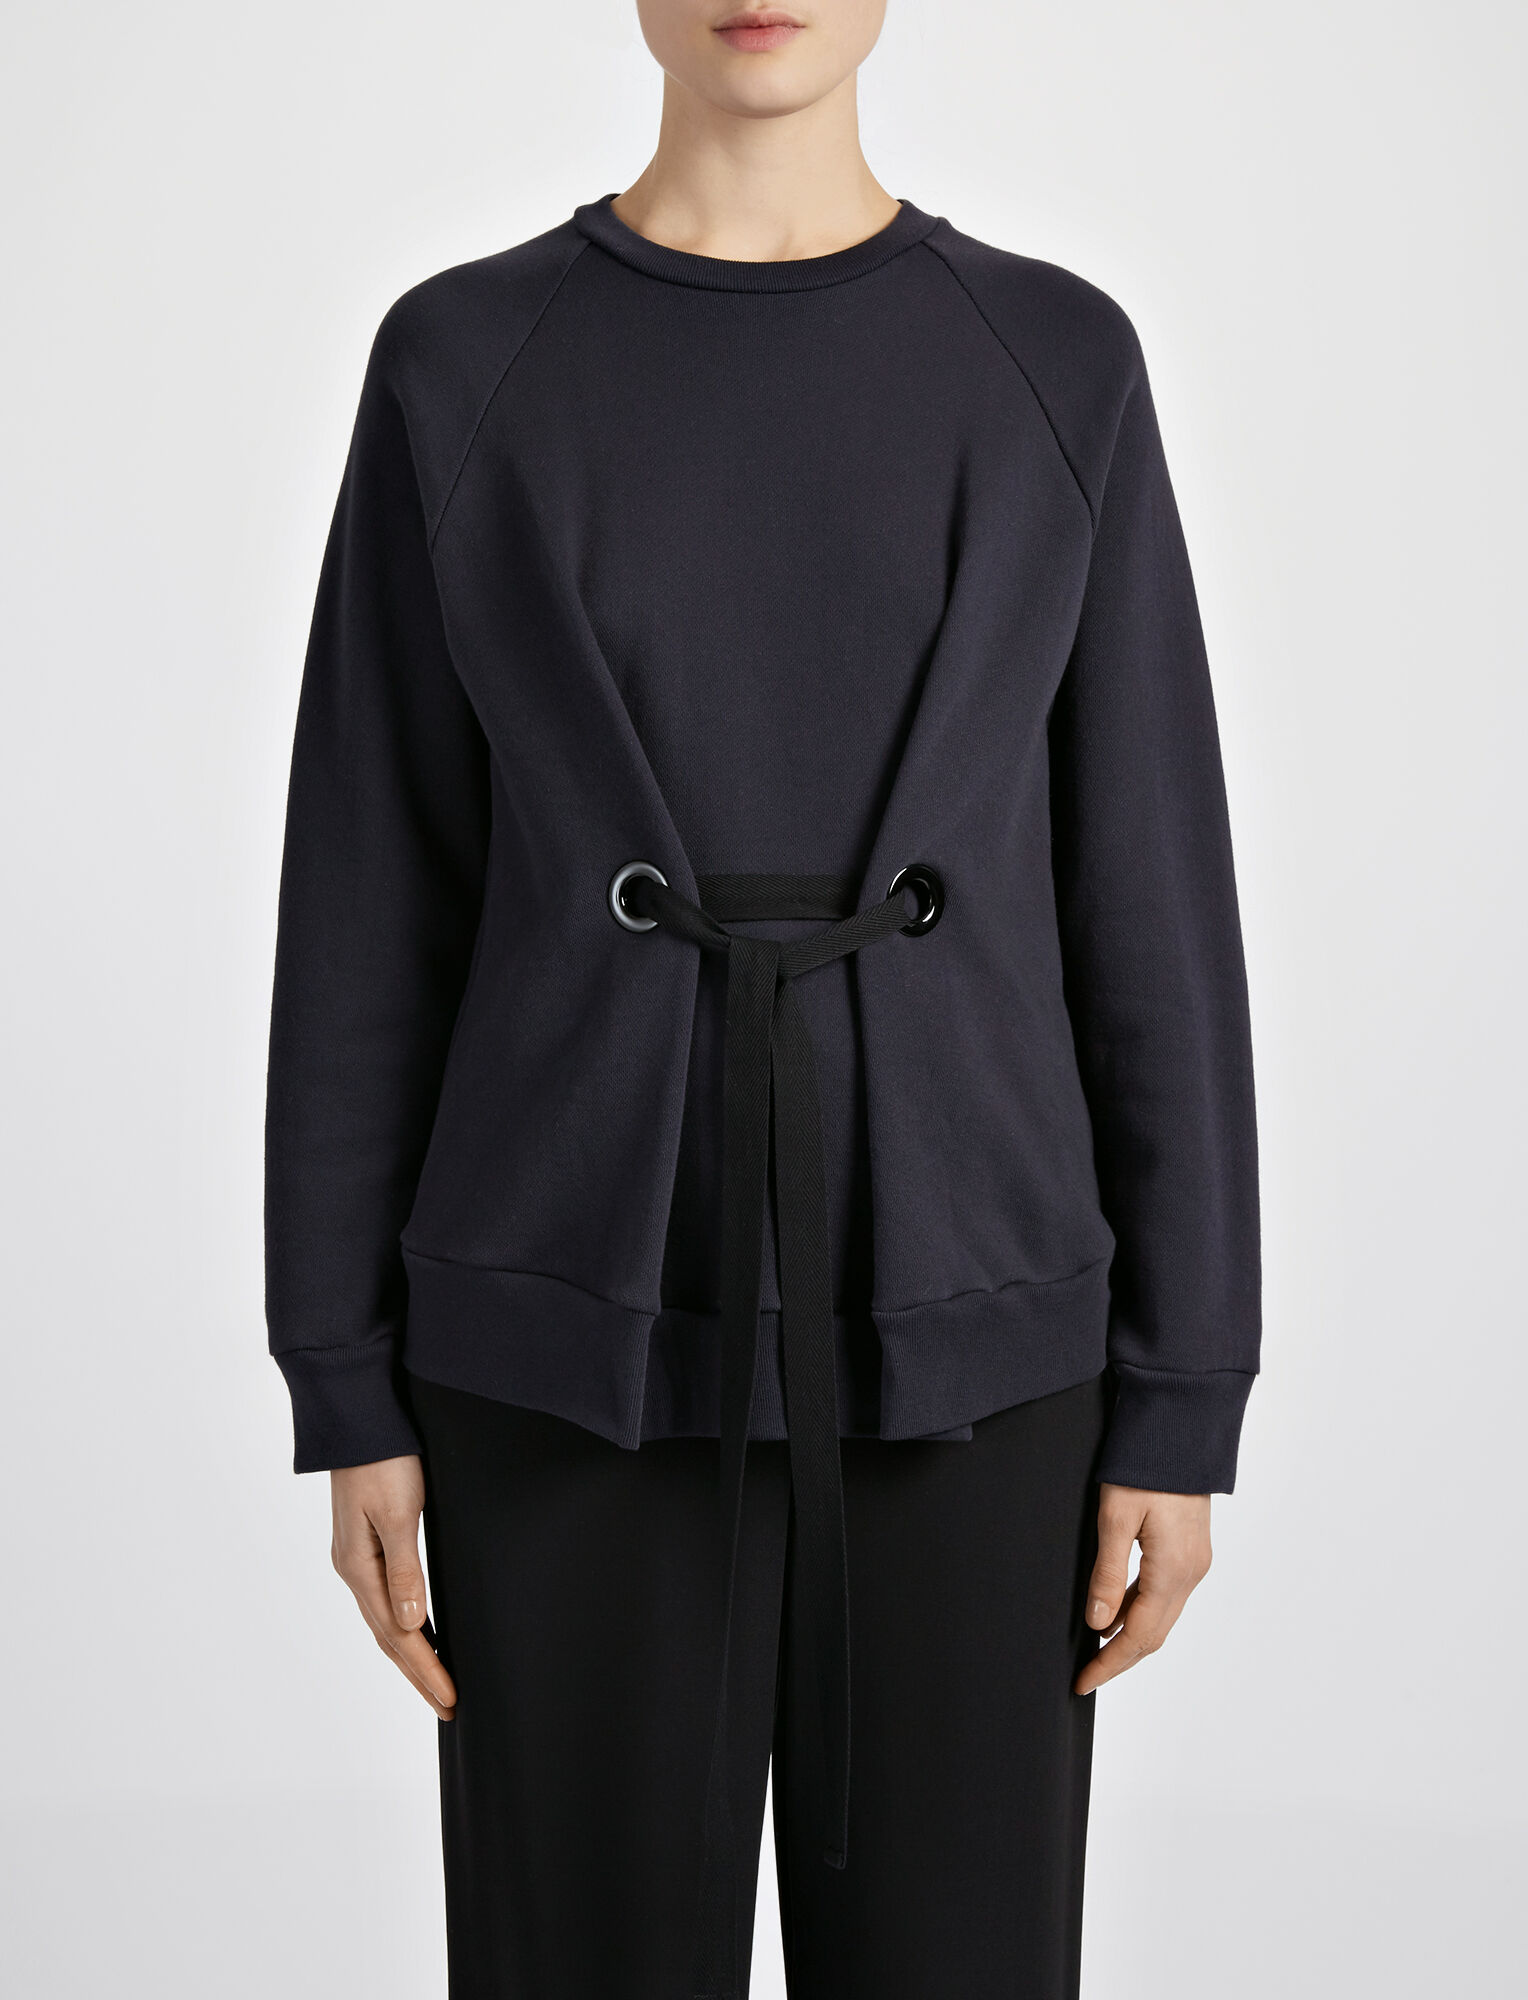 Joseph, Loop Back Eyelet Sweater, in NAVY